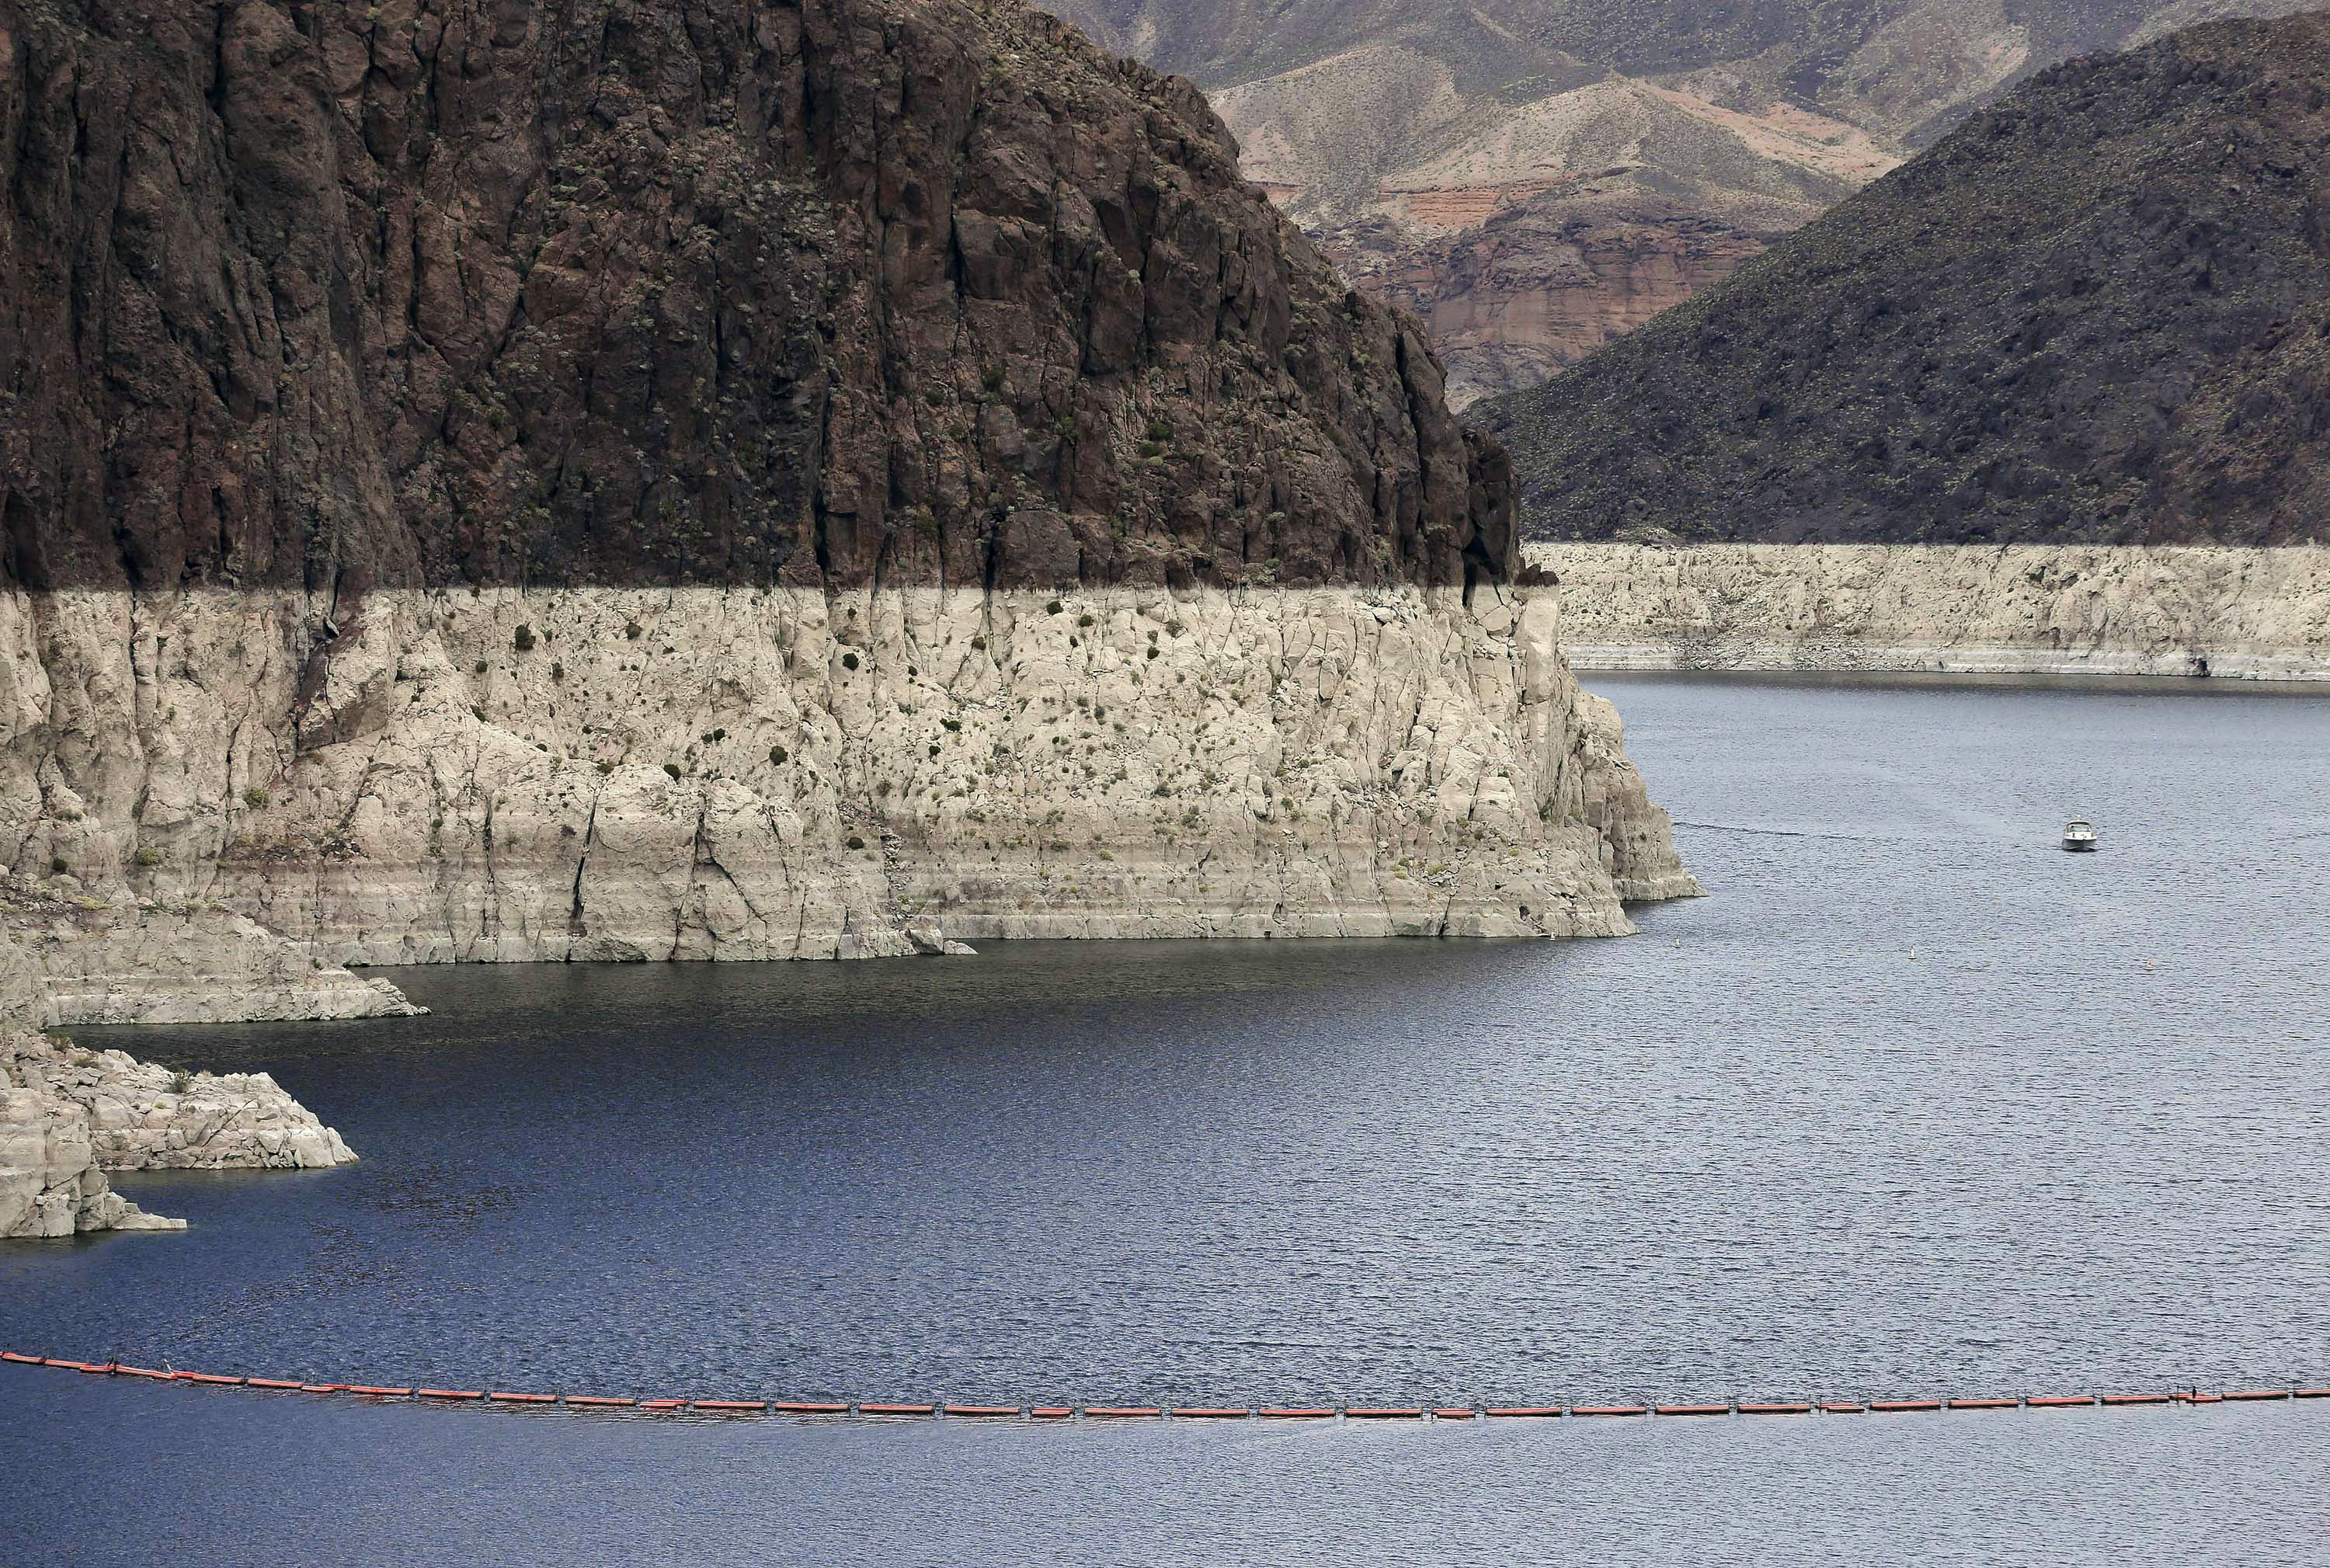 Photo: Lake Mead Drought - AP